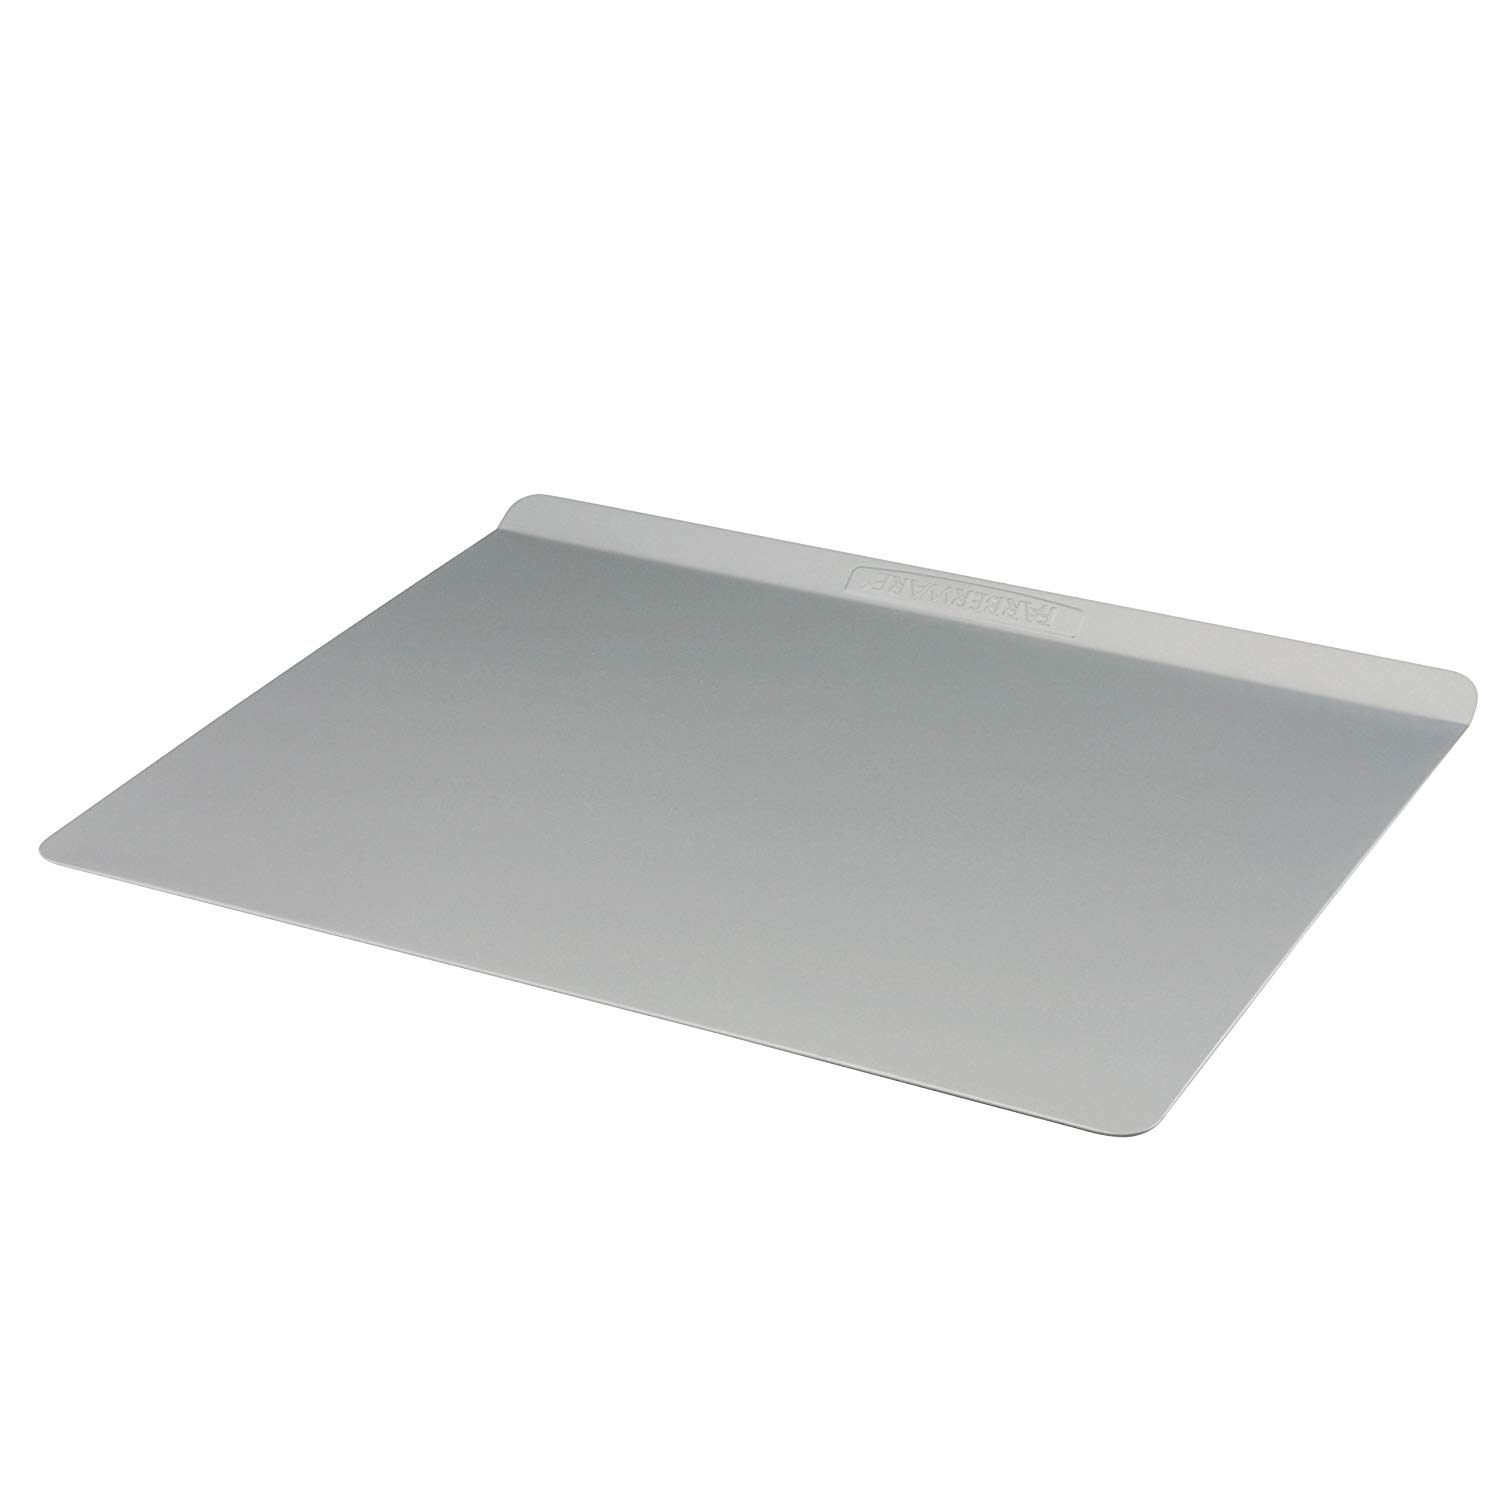 Farberware insulated nonstick cookie sheet